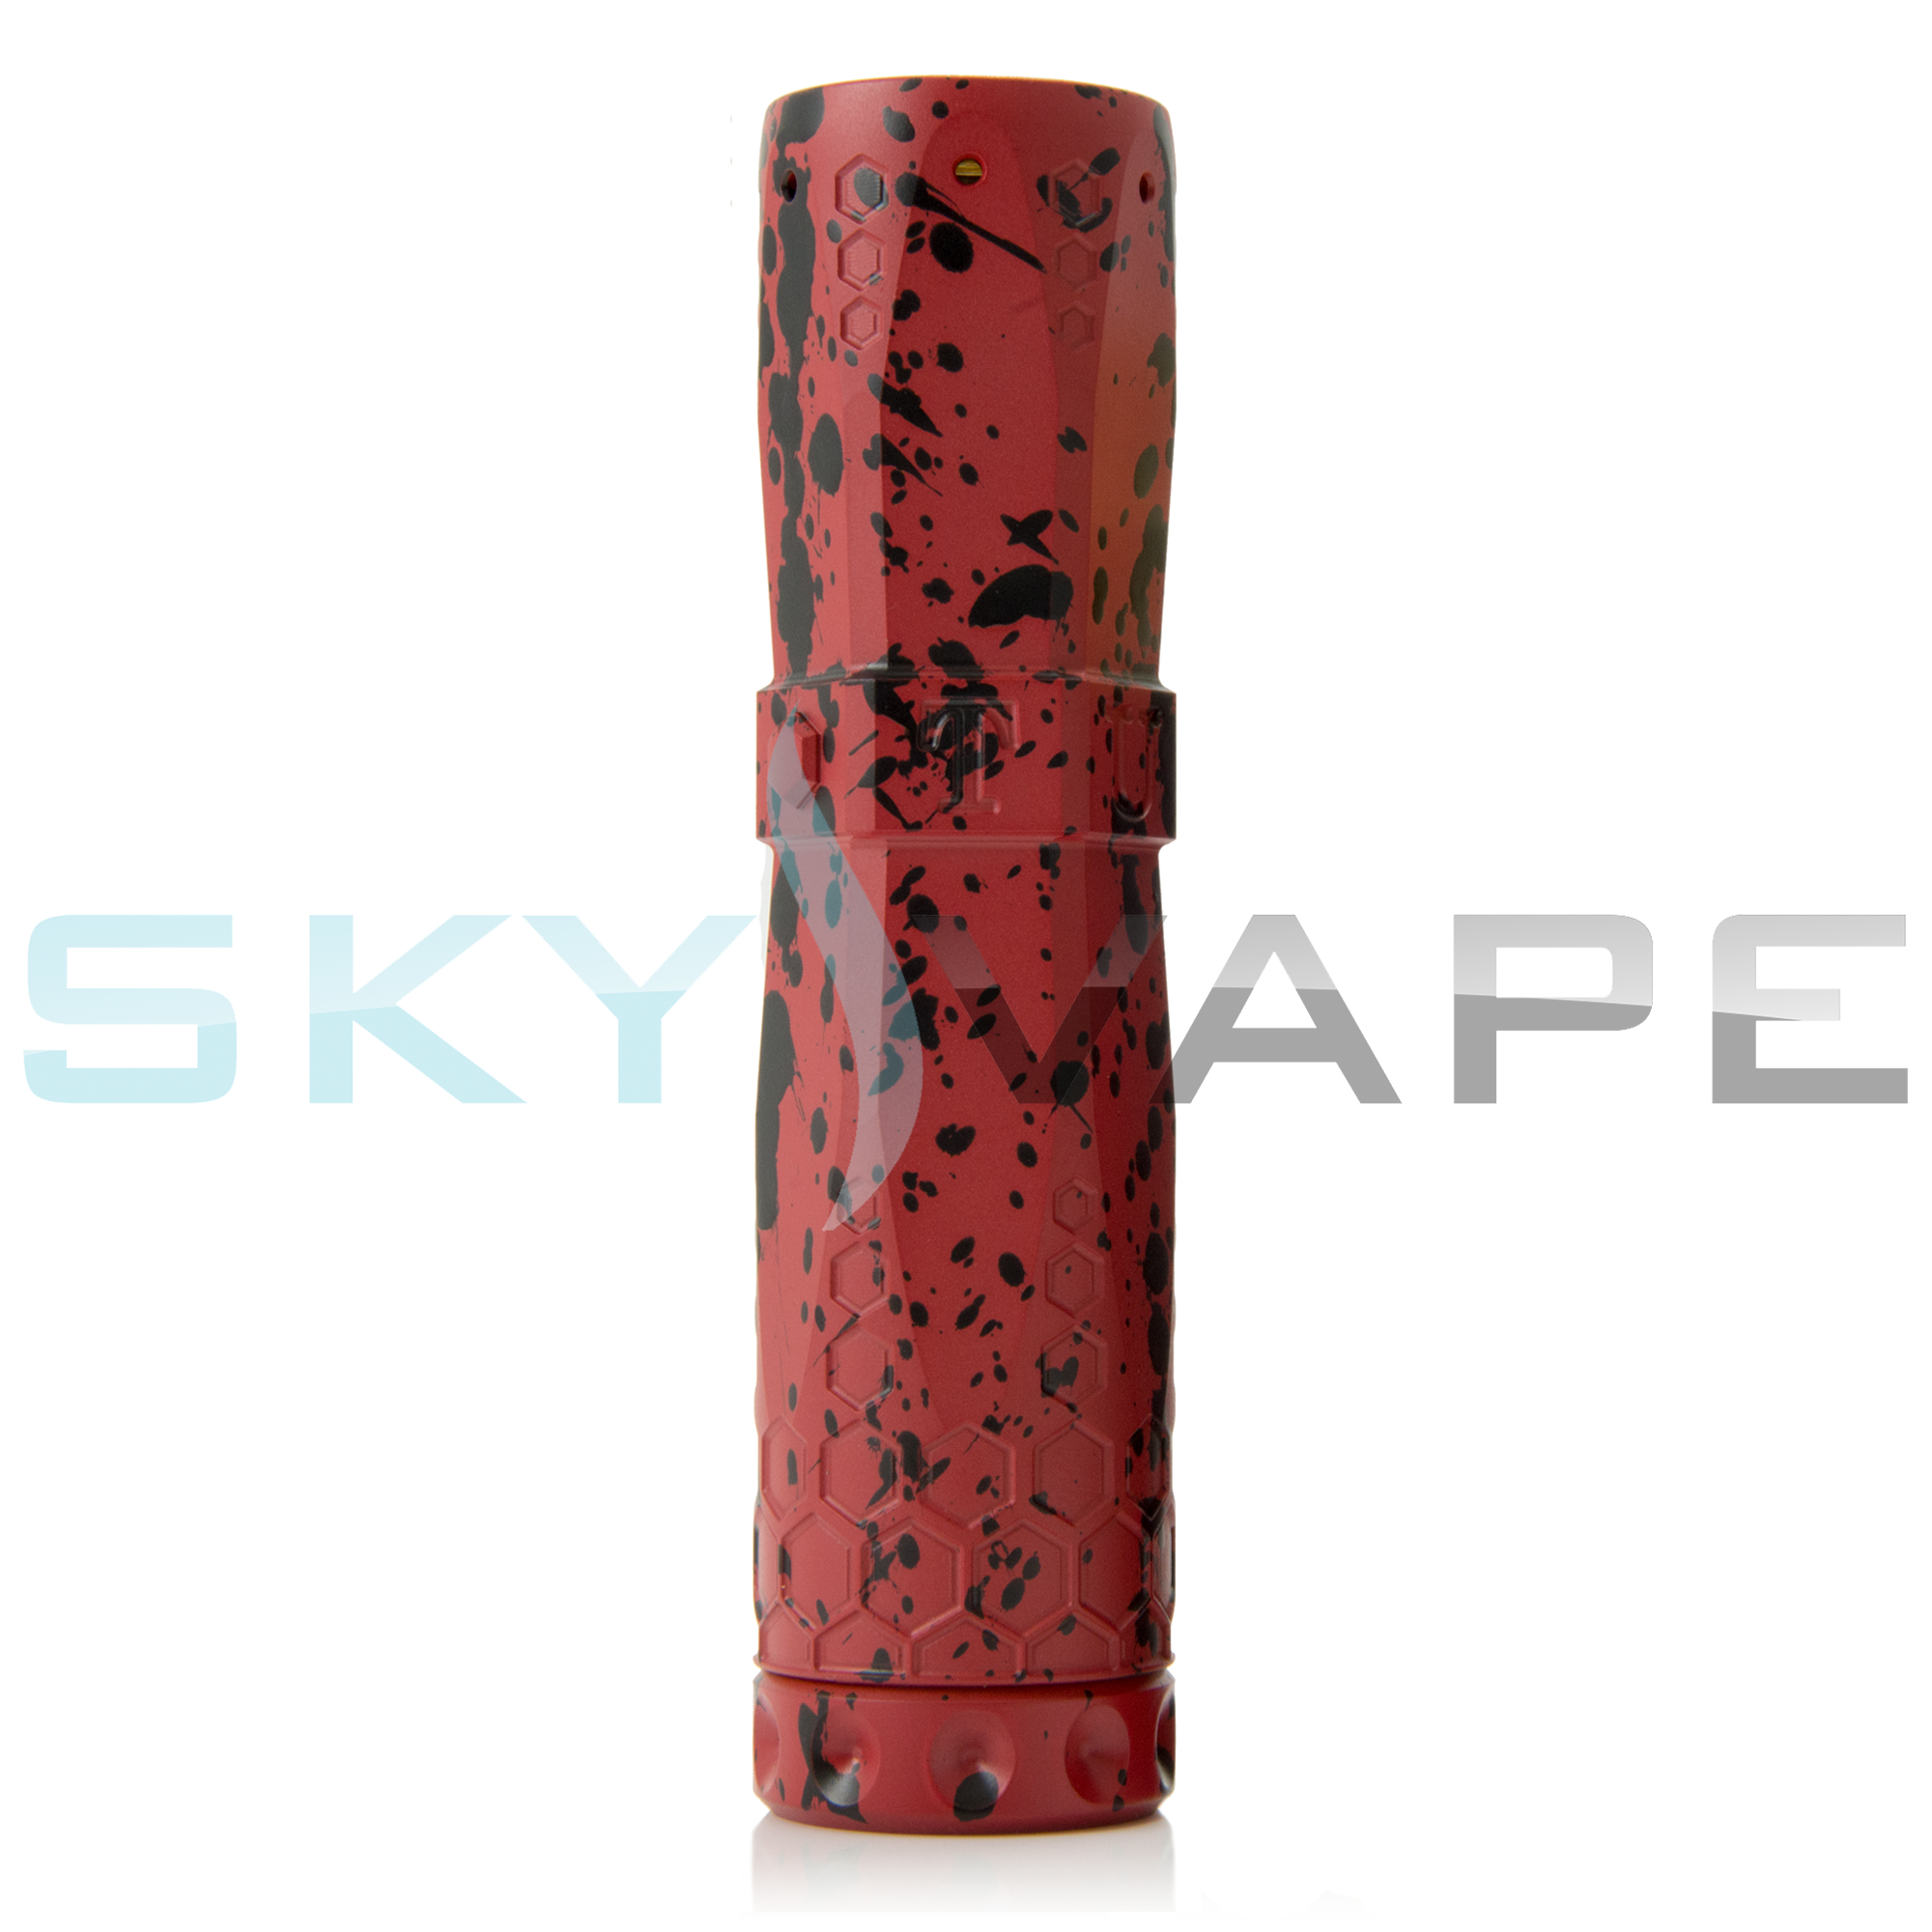 Purge Mods Turbo Splatter Mod